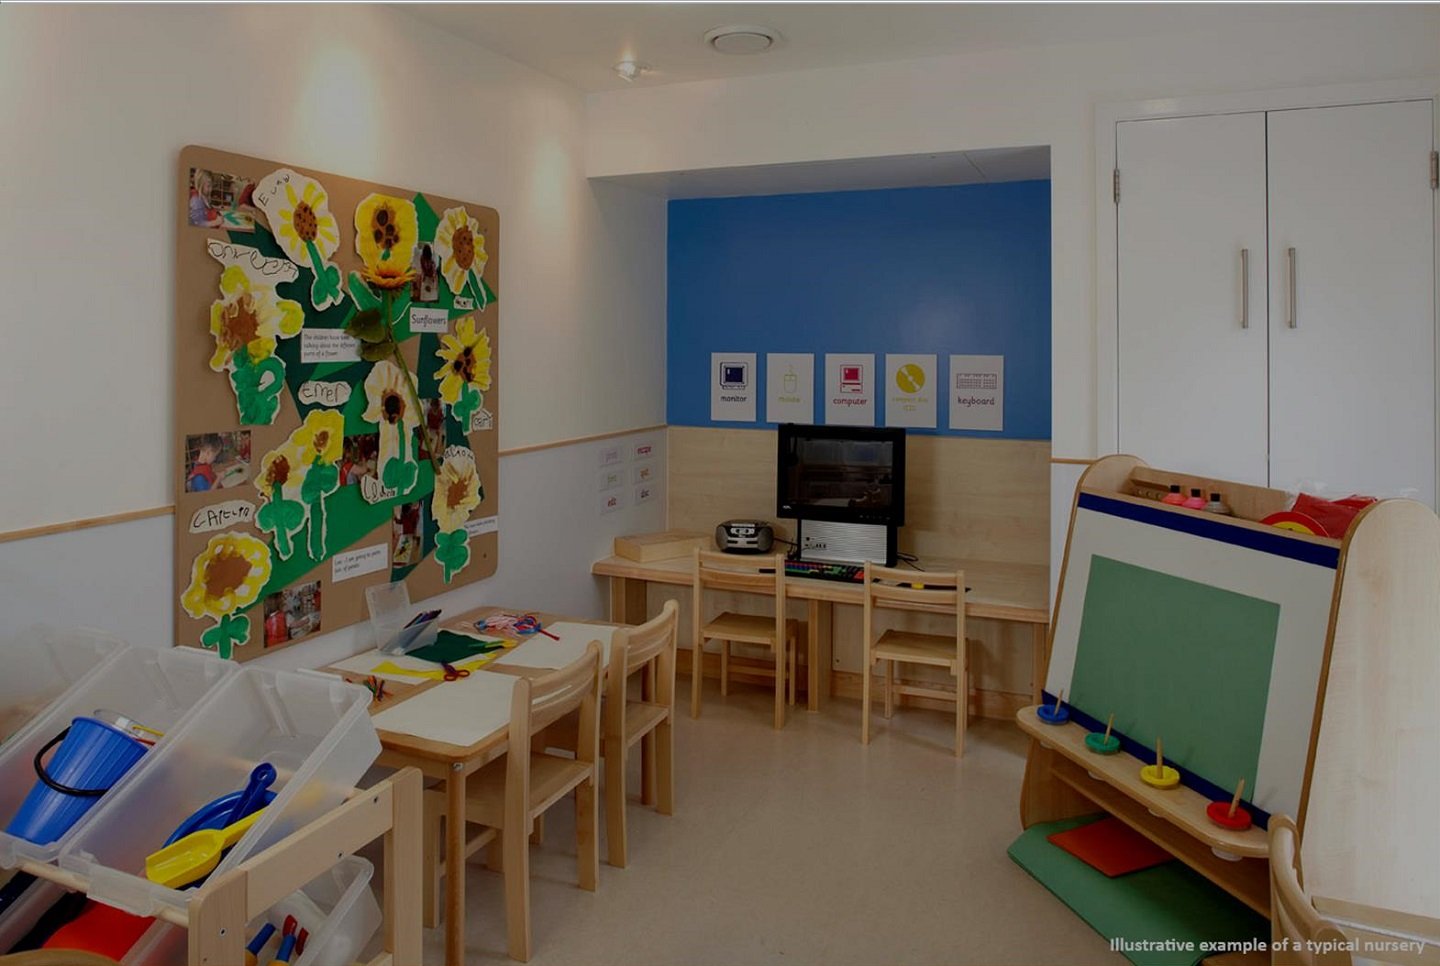 Bright Horizons Bunnybrookes Day Nursery and Preschool